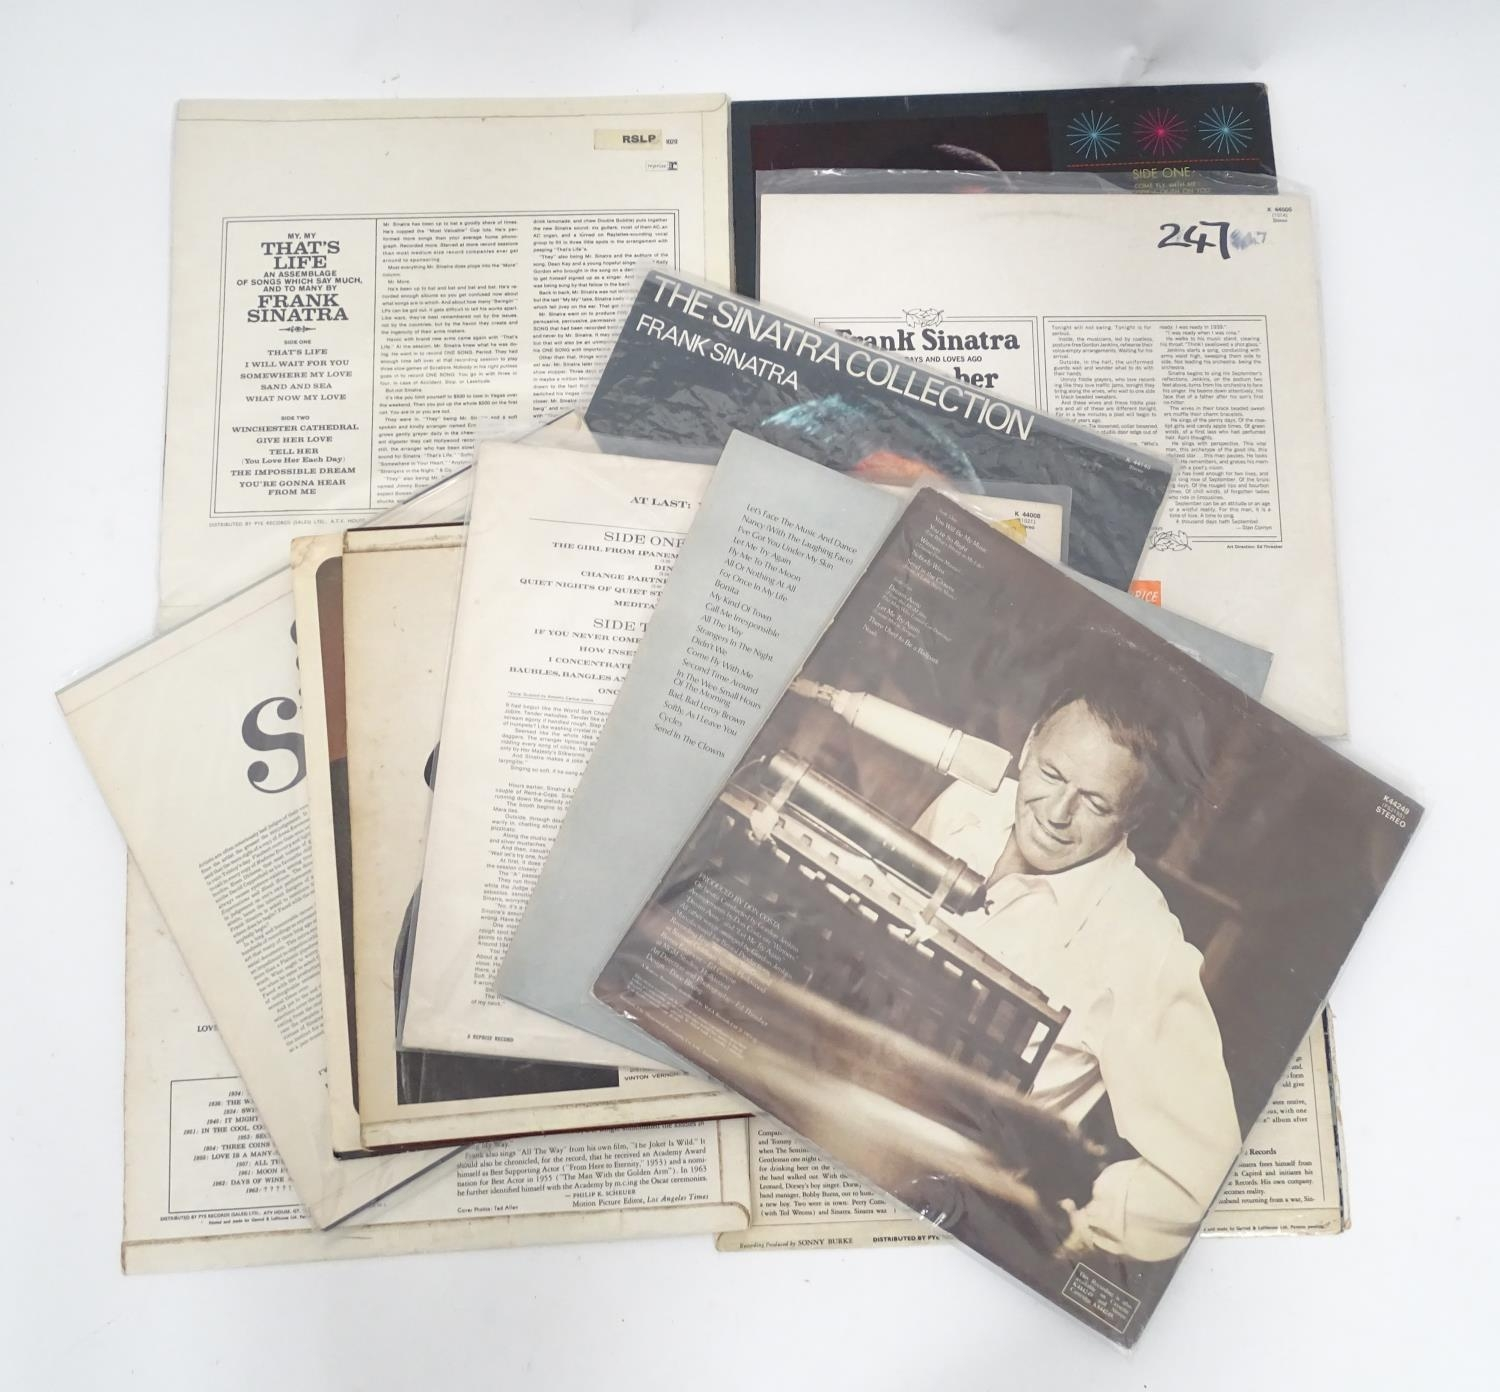 A quantity of Frank Sinatra LP vinyl records Please Note - we do not make reference to the condition - Image 2 of 7